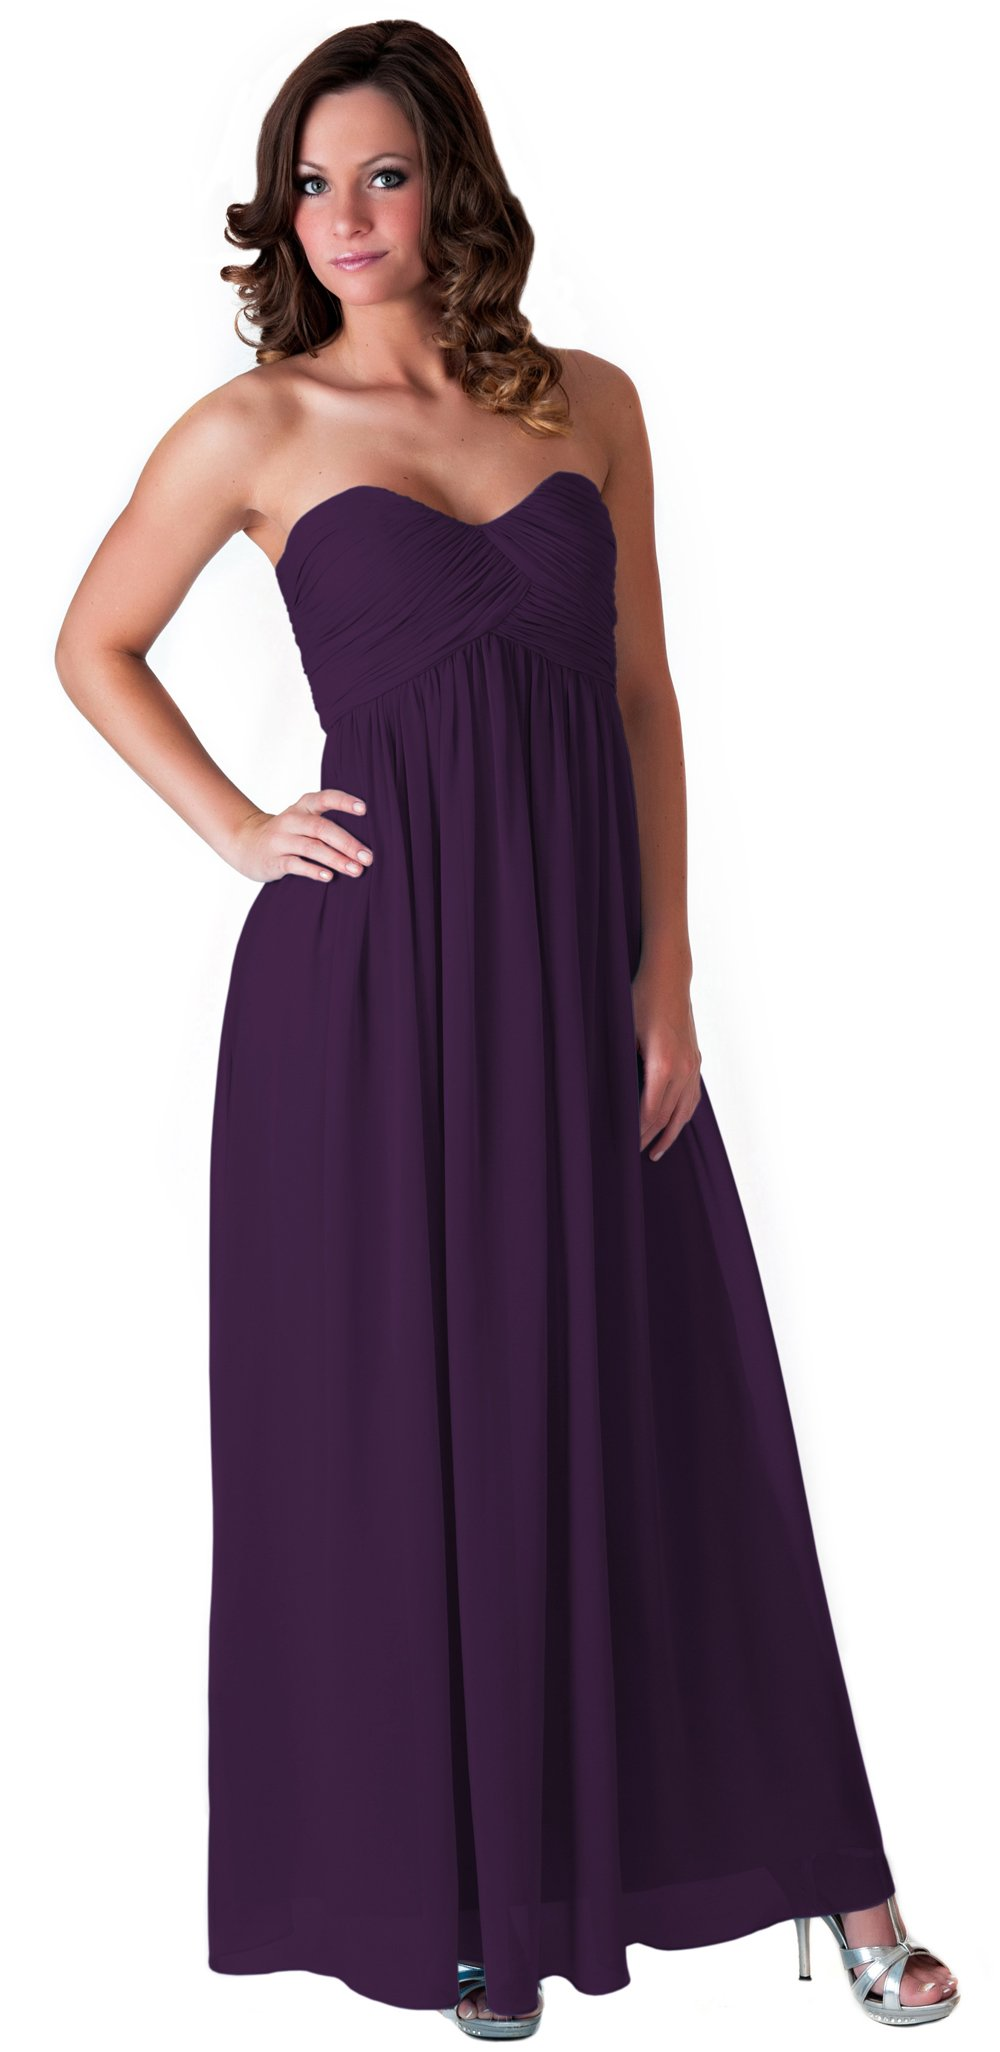 Faship Womens Long Evening Gown Bridesmaid Wedding Party Prom Formal Dress,Dark Purple,18 Plus